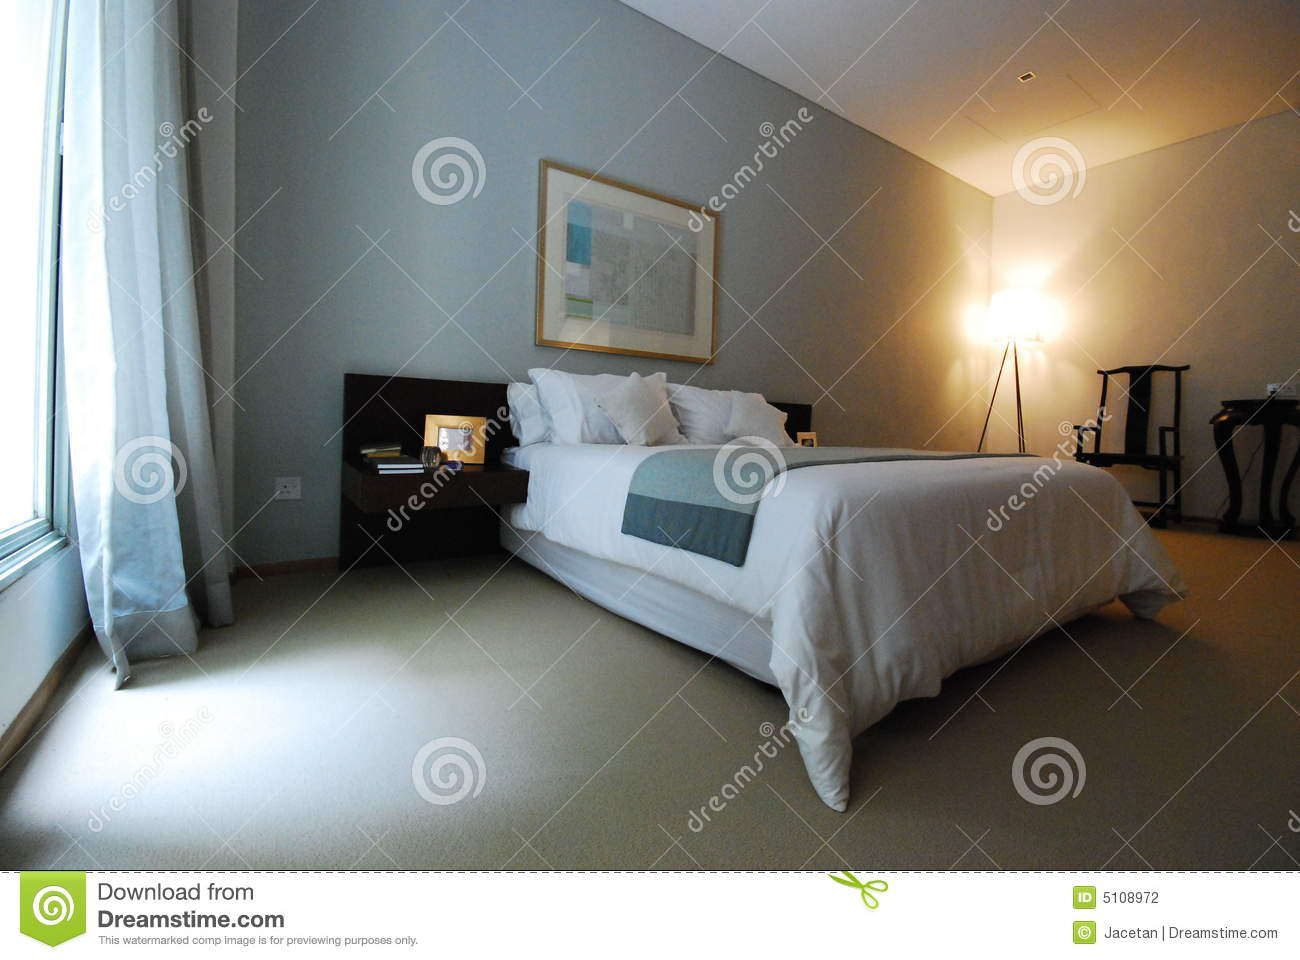 Beautiful bedroom designs hot girls wallpaper for Beautiful bedroom pics hd